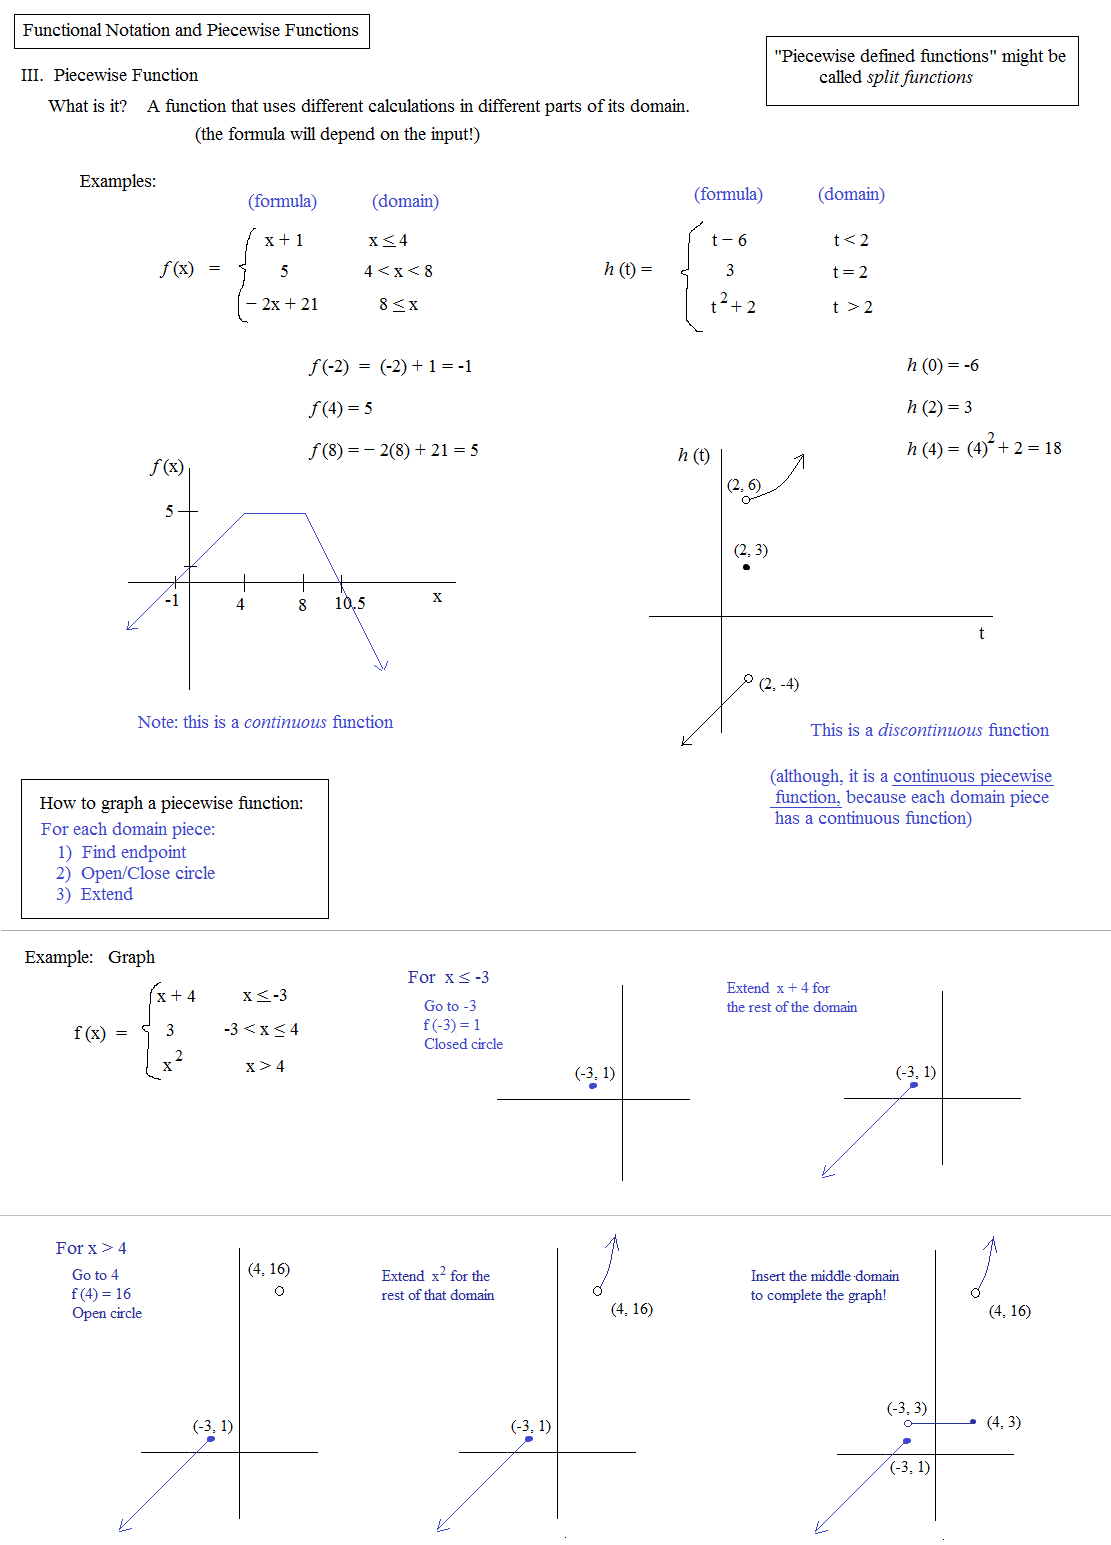 Worksheets Function Notation Worksheet With Answers math plane piecewise functions fx notation function and notes 2